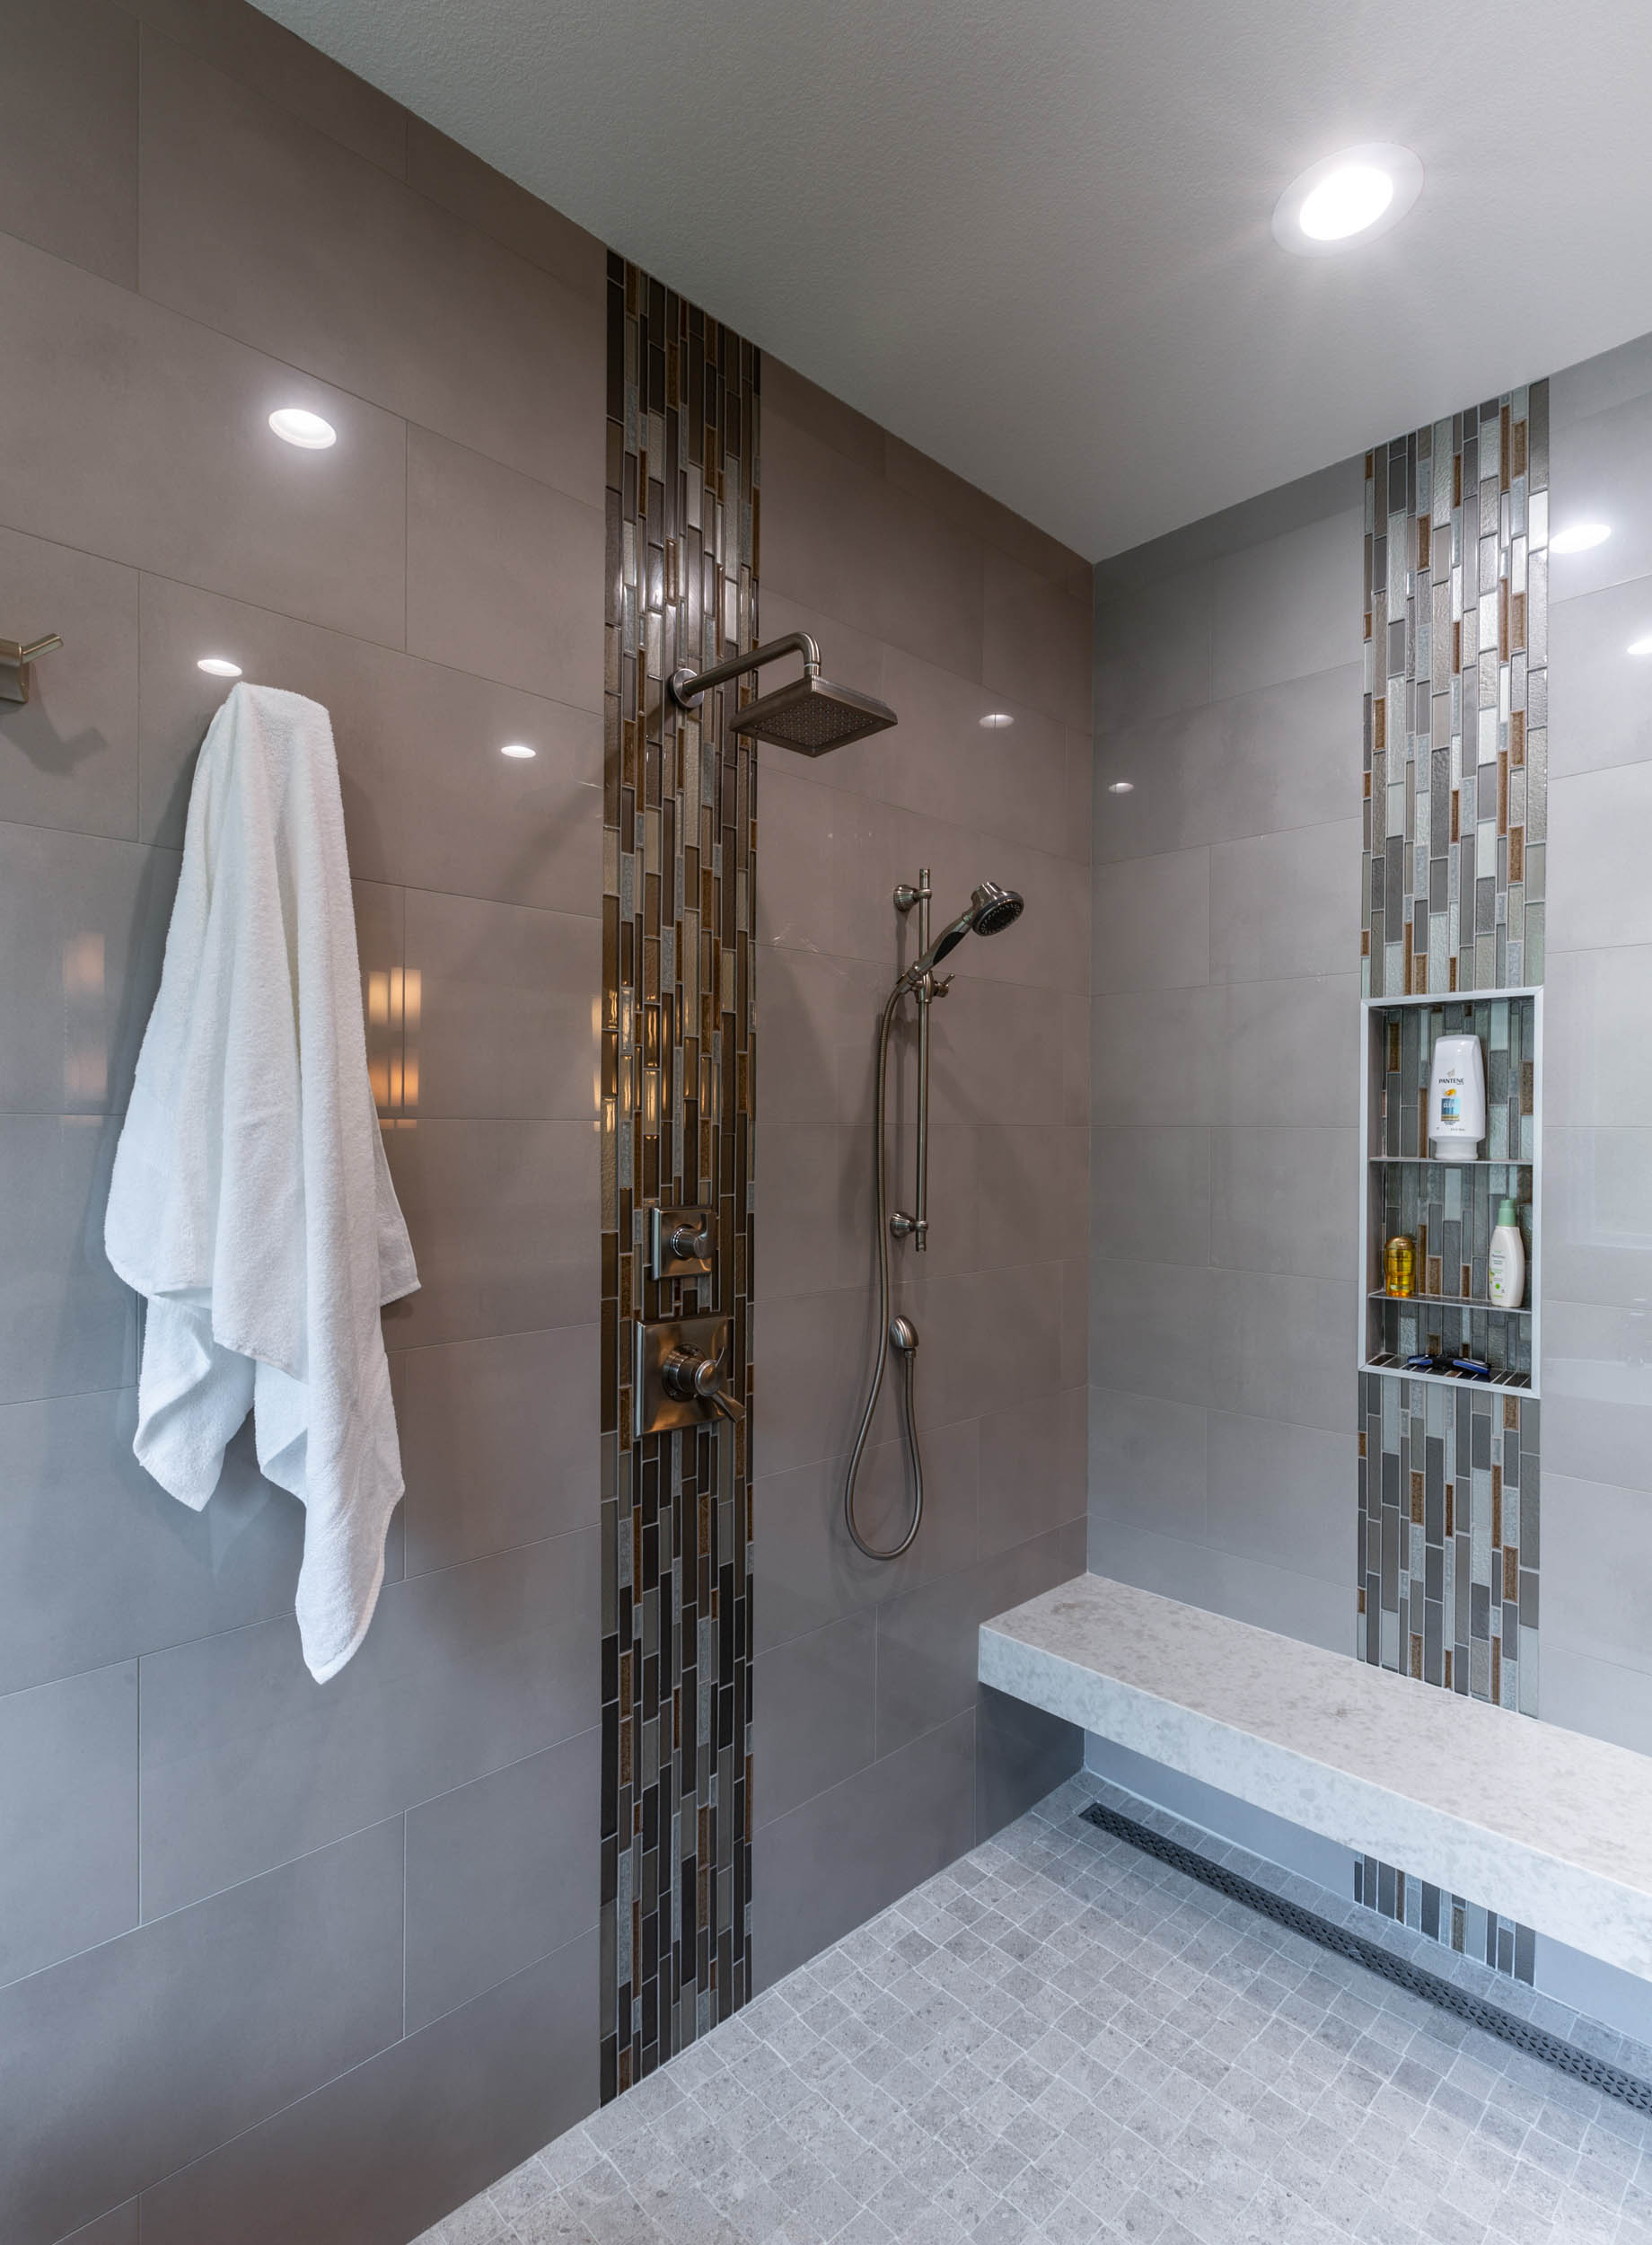 Master bath remodel with custom tile in seamless shower space